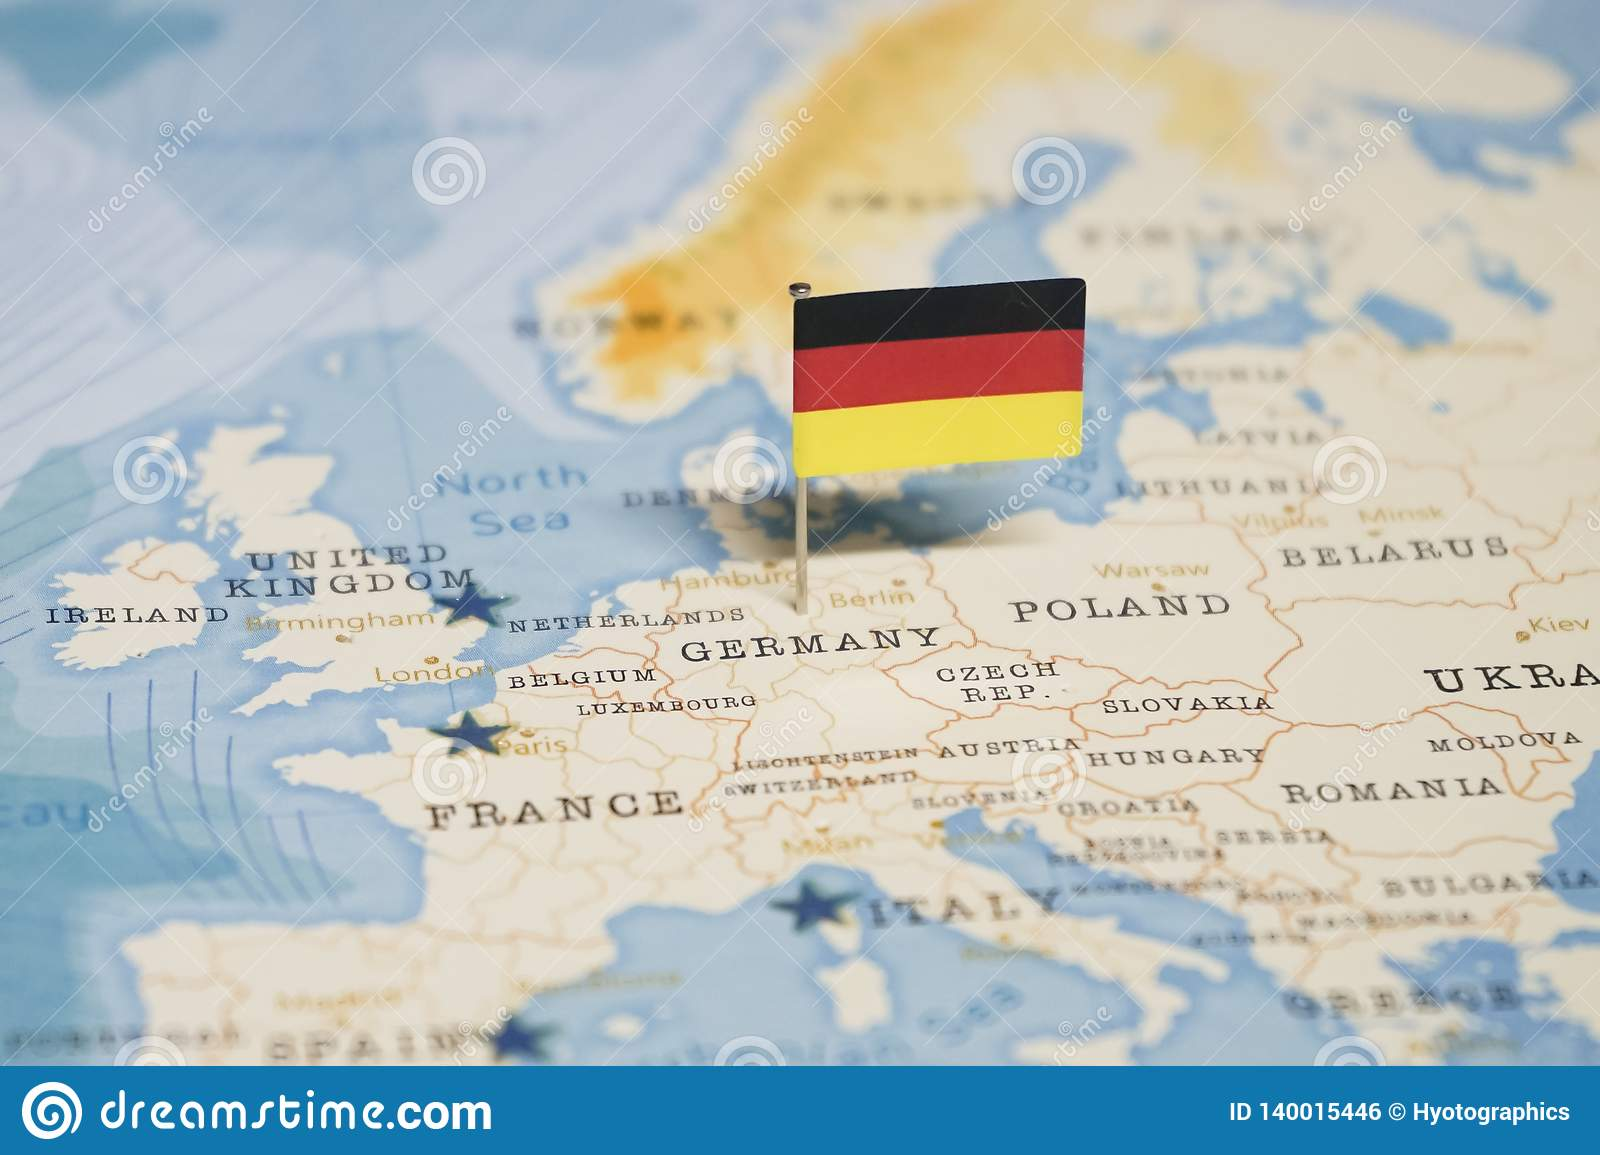 The Flag Of Germany In The World Map Stock Photo - Image of ...